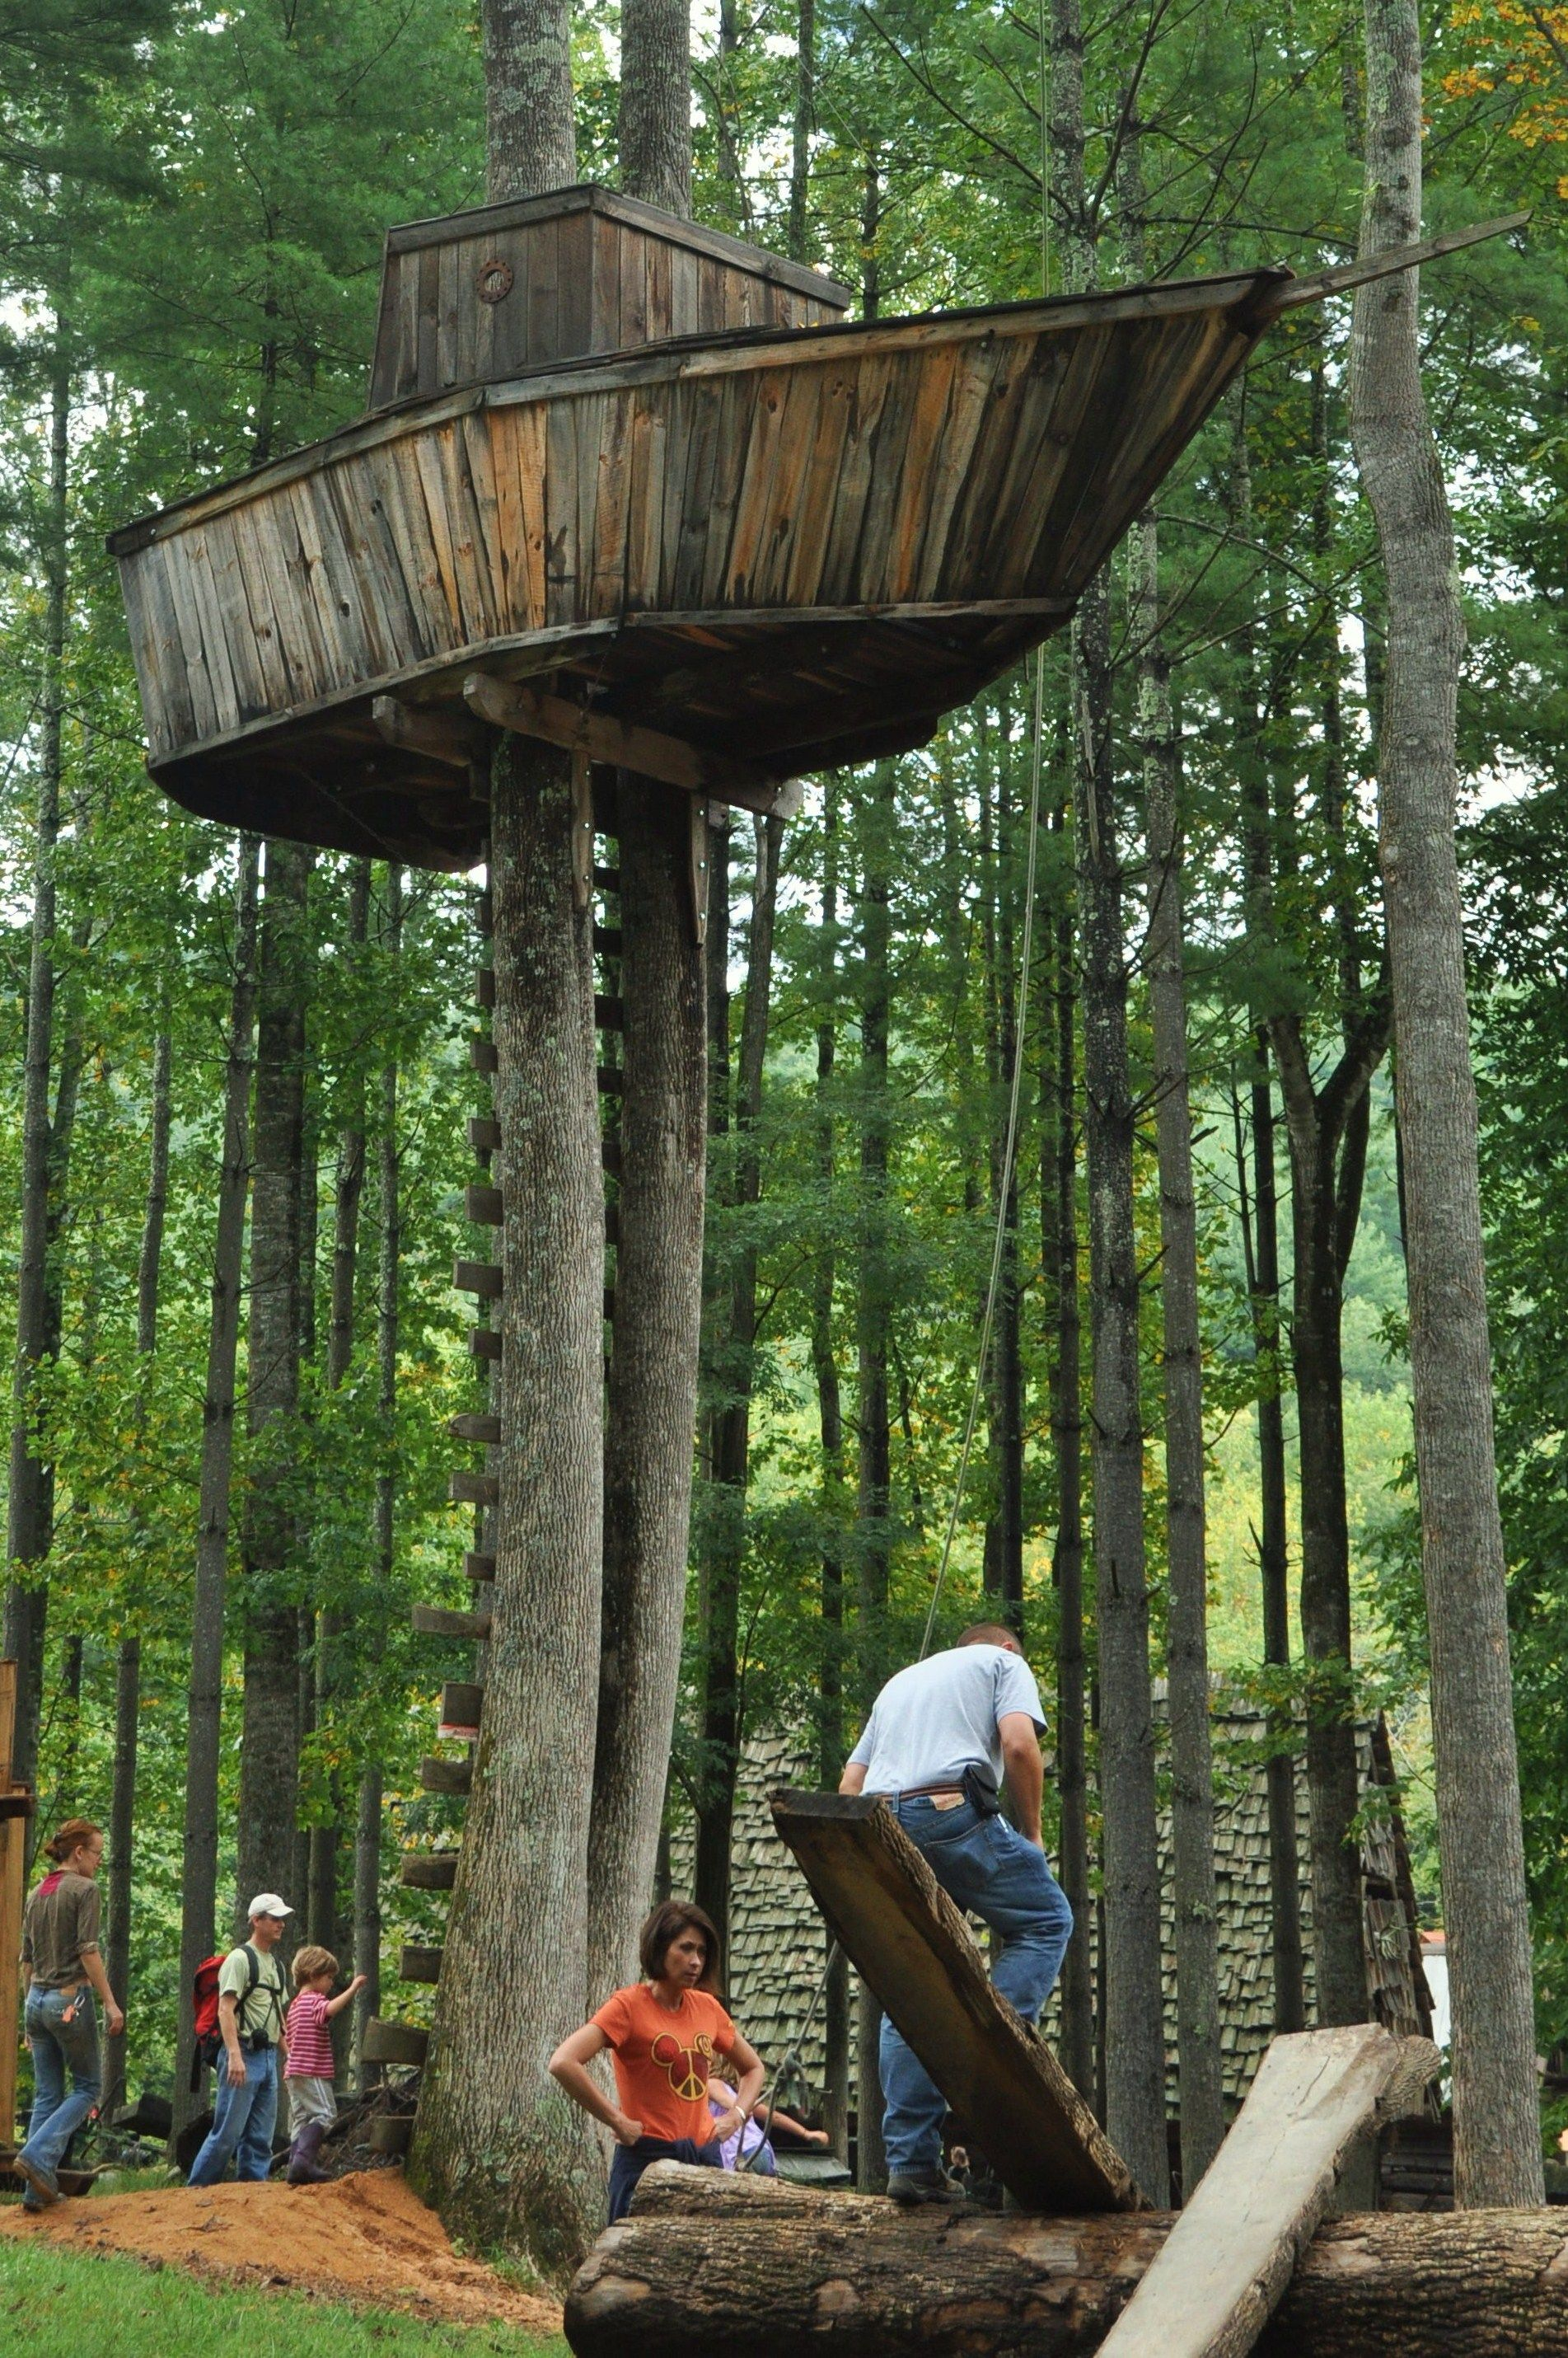 Tree fort ideas for lake...hubby wanted a boat for our lot :